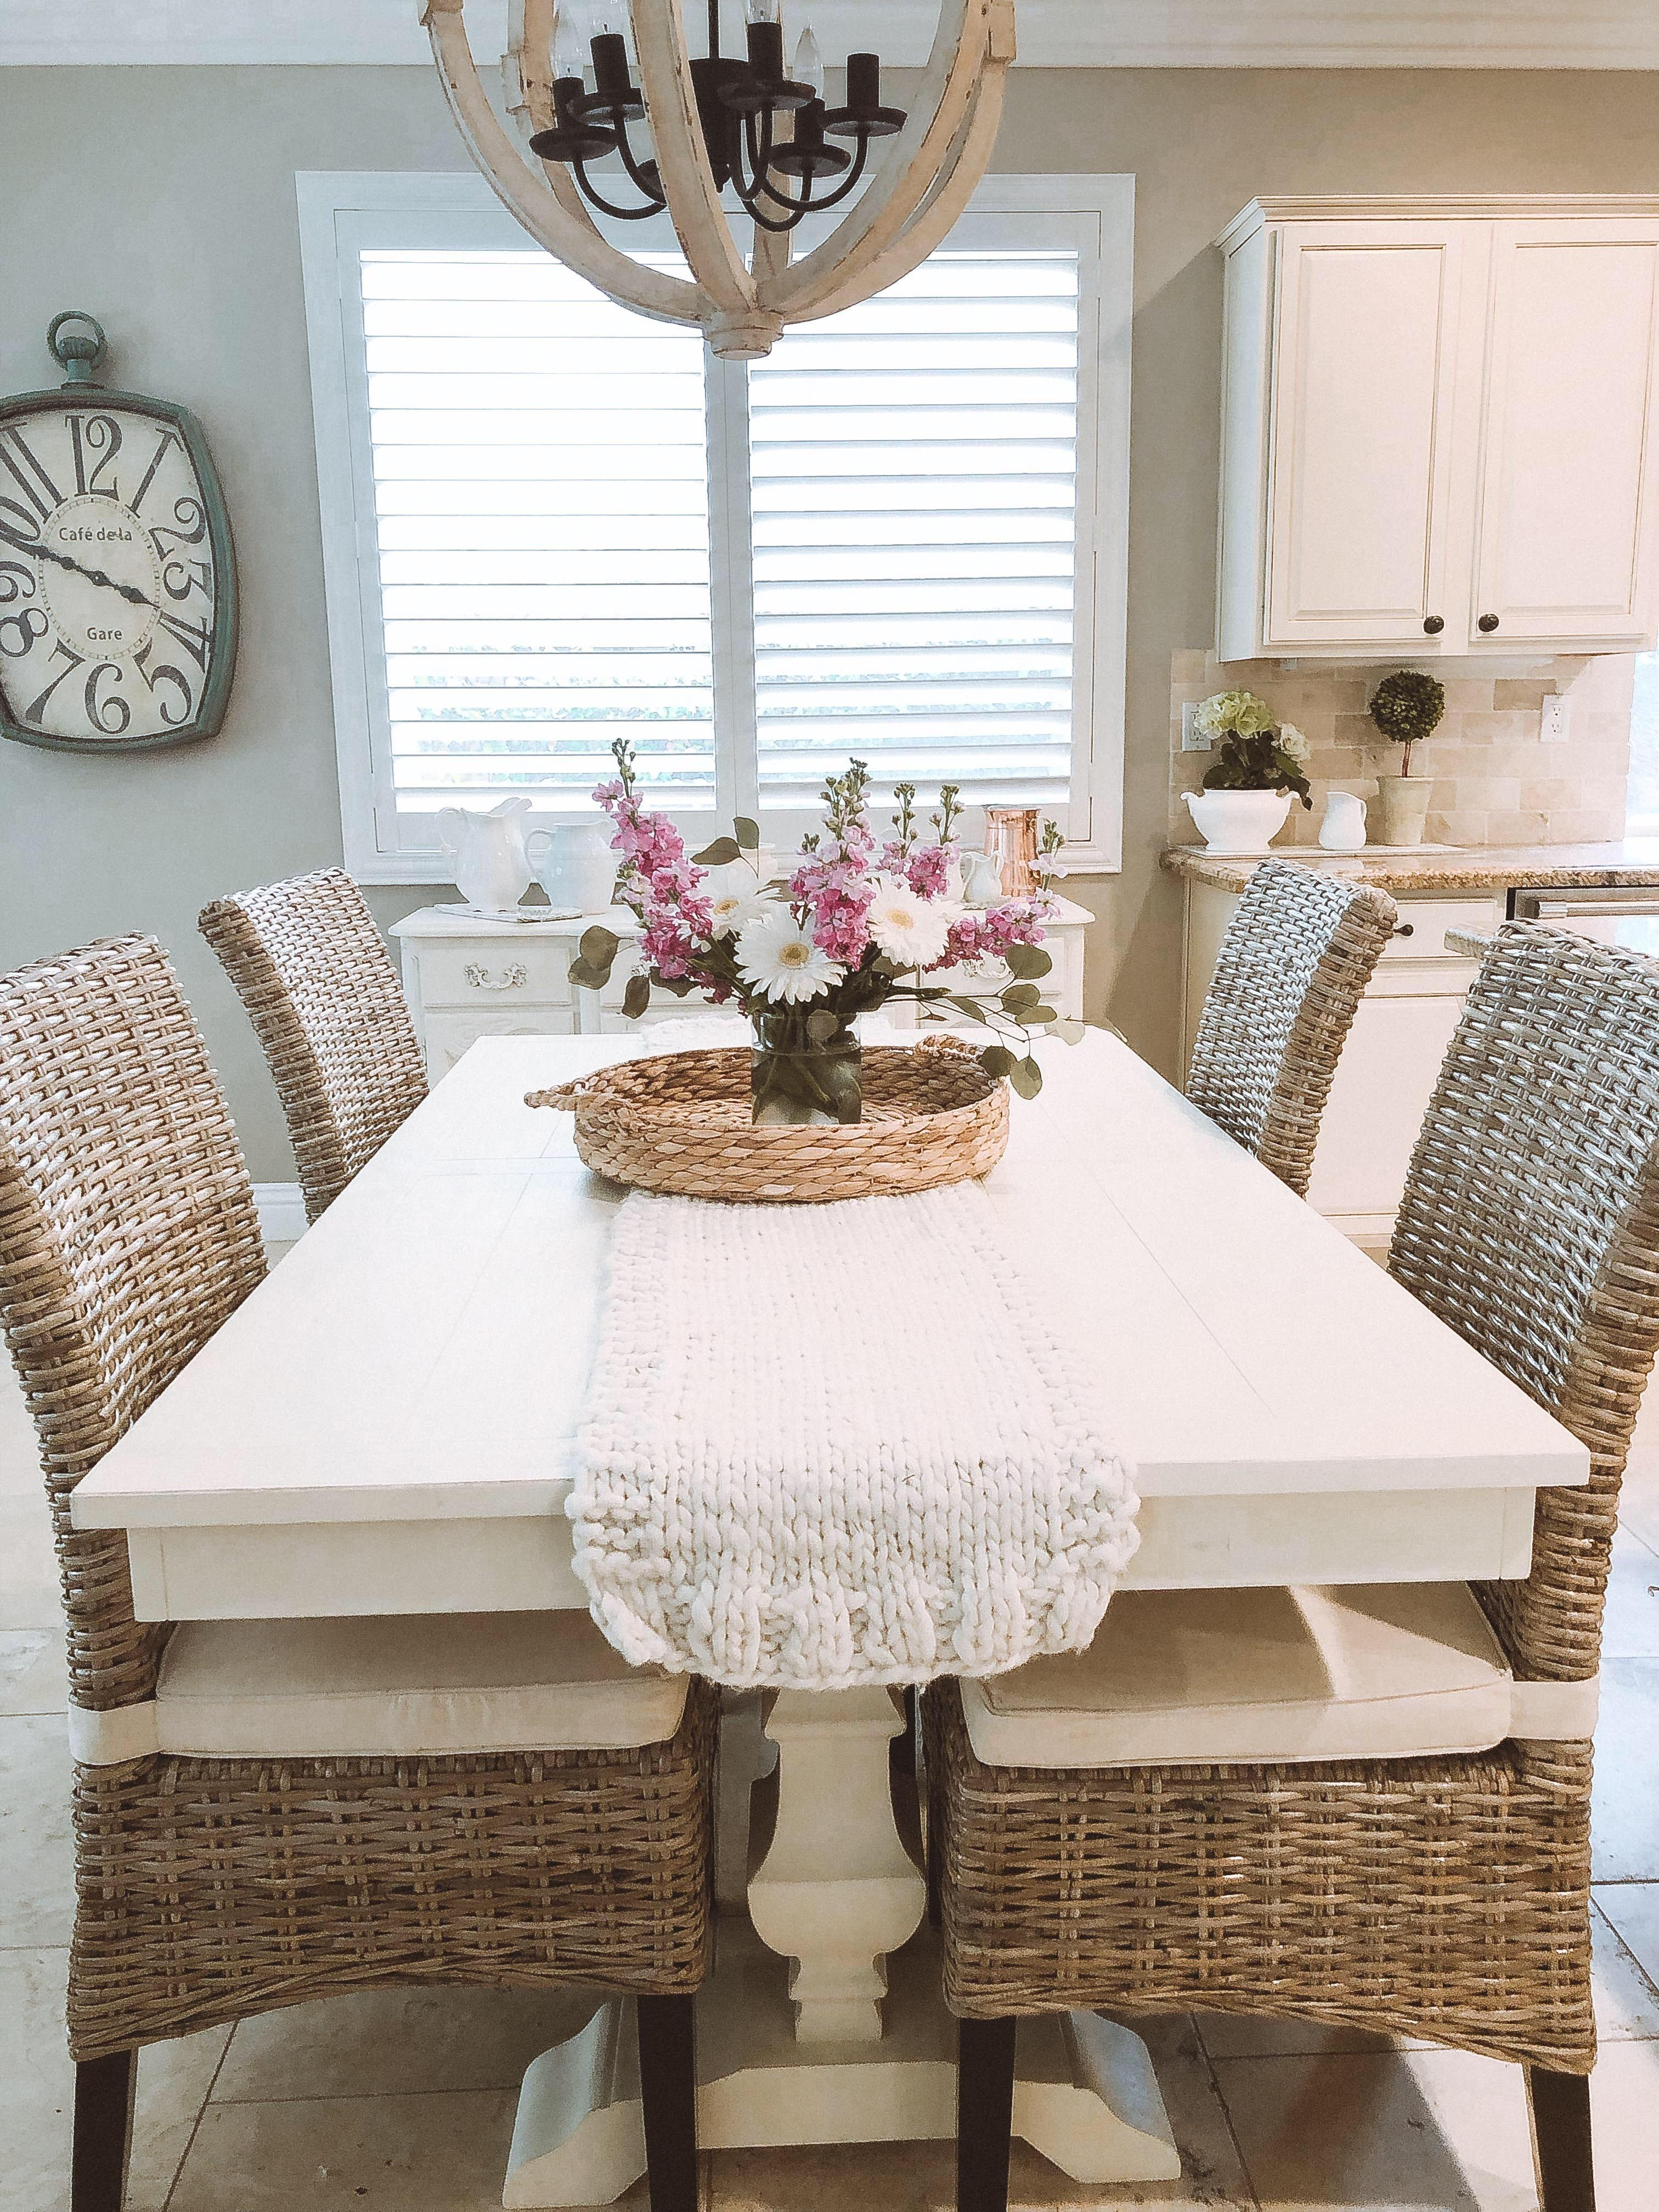 Pier1 Table And Chairs Farmhouse Dining Room Table Dining Room Table Decor Dining Table